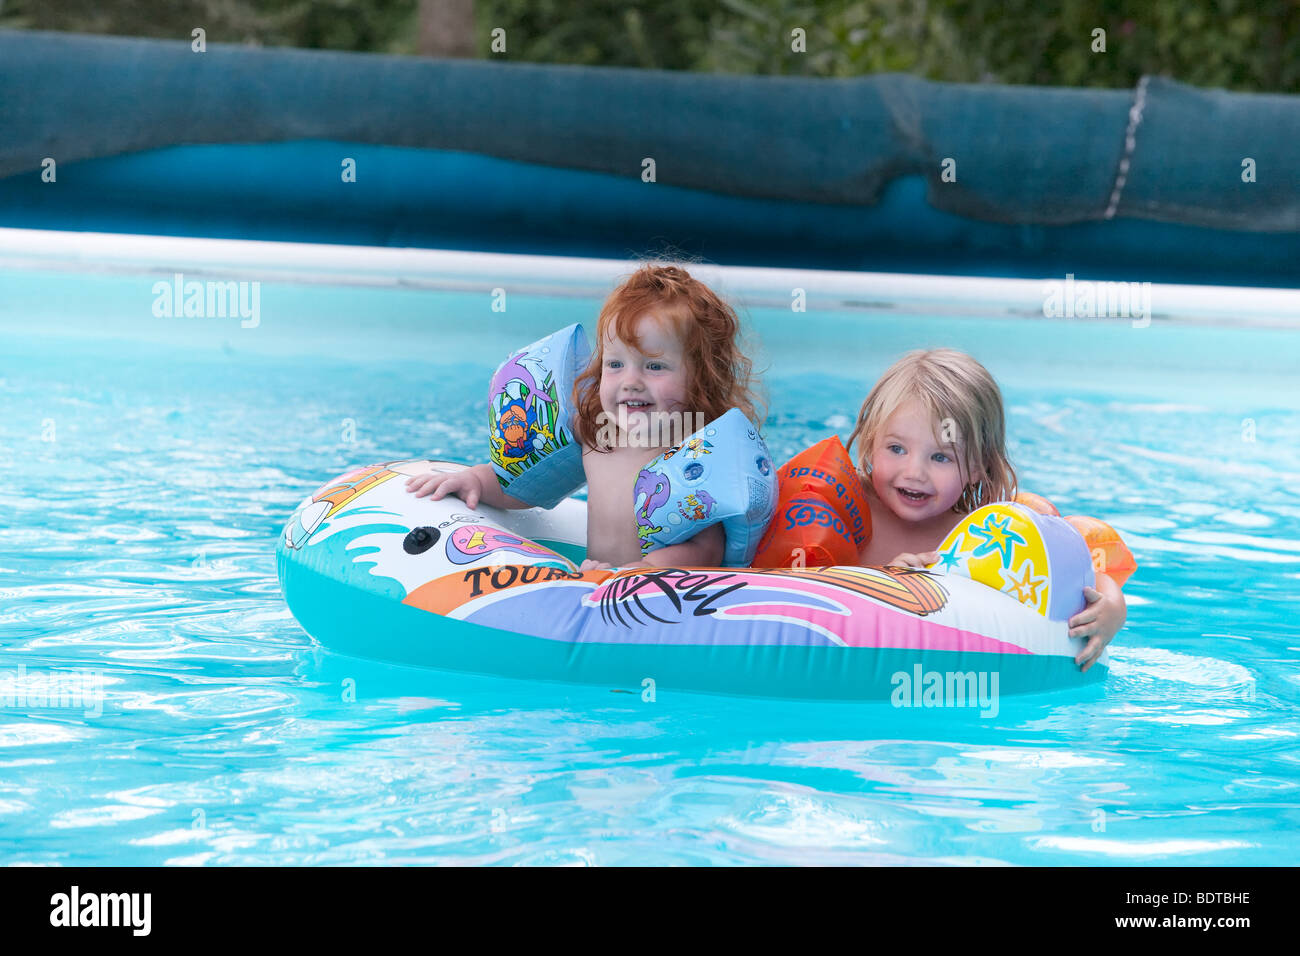 Two Small Girls In Inflatable Boat On Swimming Pool Stock Photo Royalty Free Image 25736858